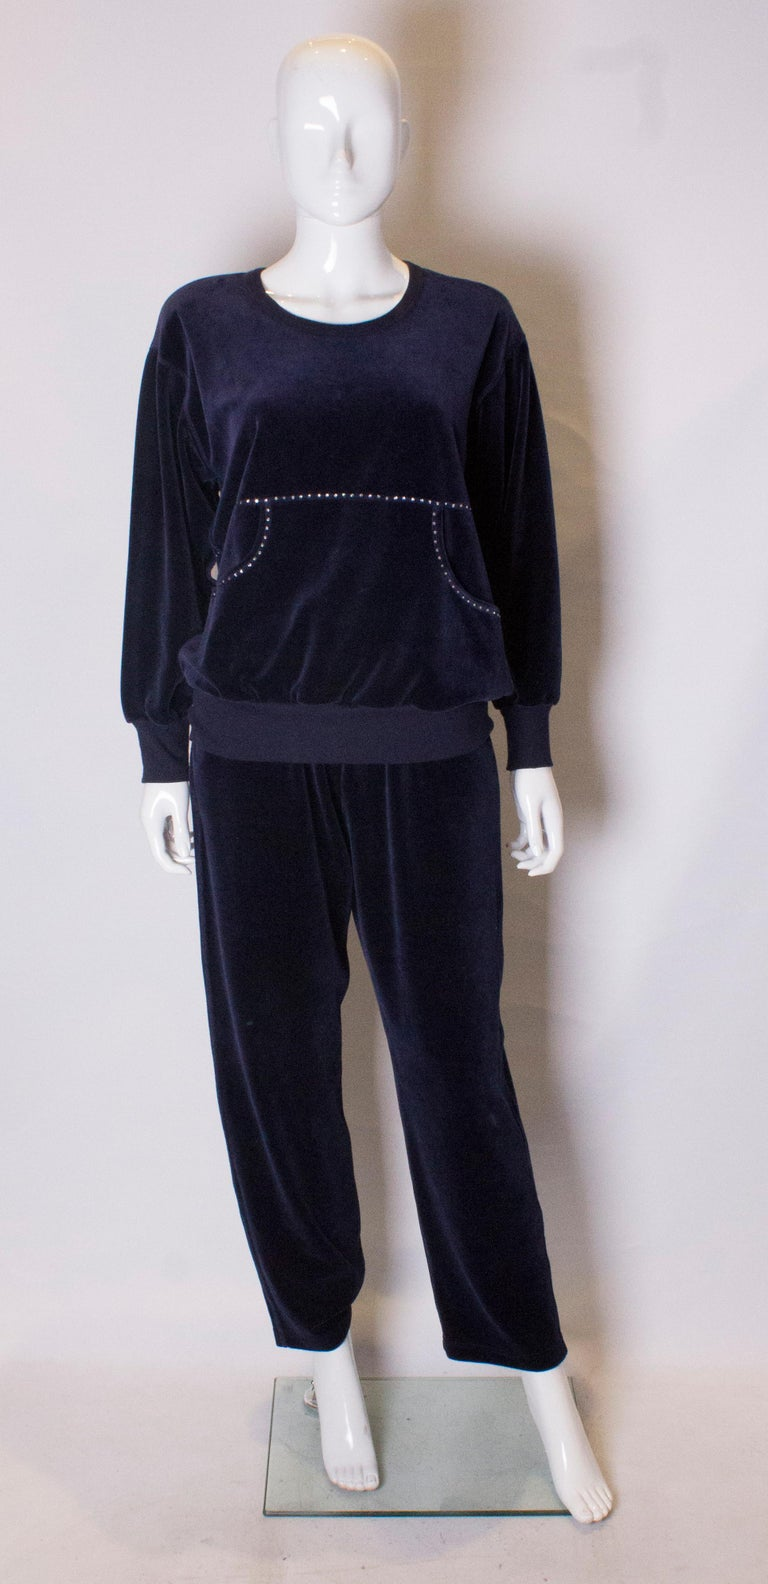 A super stylish leisure suit by Sonia Rykiel. The suit is in a deep blue velour , with two pouch pockets at the front. The top has a scoop round neck and diamante detail at the front and back. The trousers have an elasticated waist and two pockets